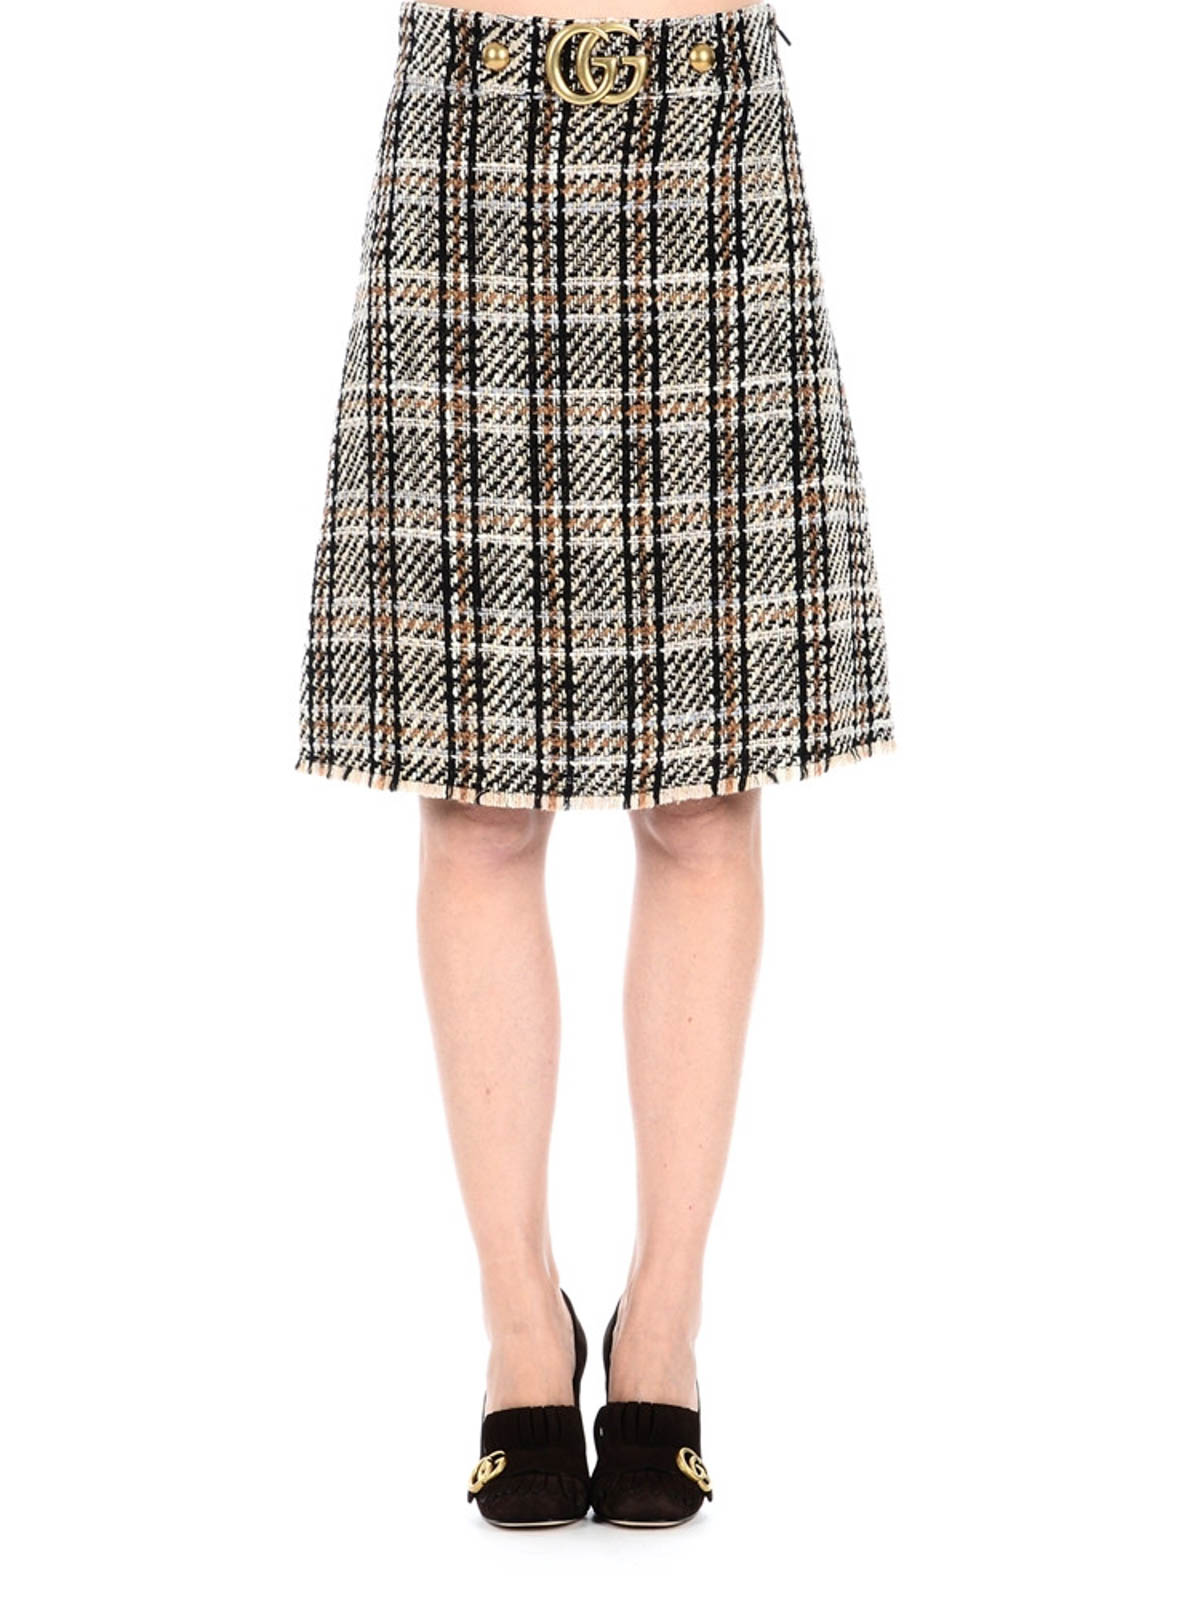 65e96629 Gucci - Wool tweed A-line GG skirt - Knee length skirts & Midi ...